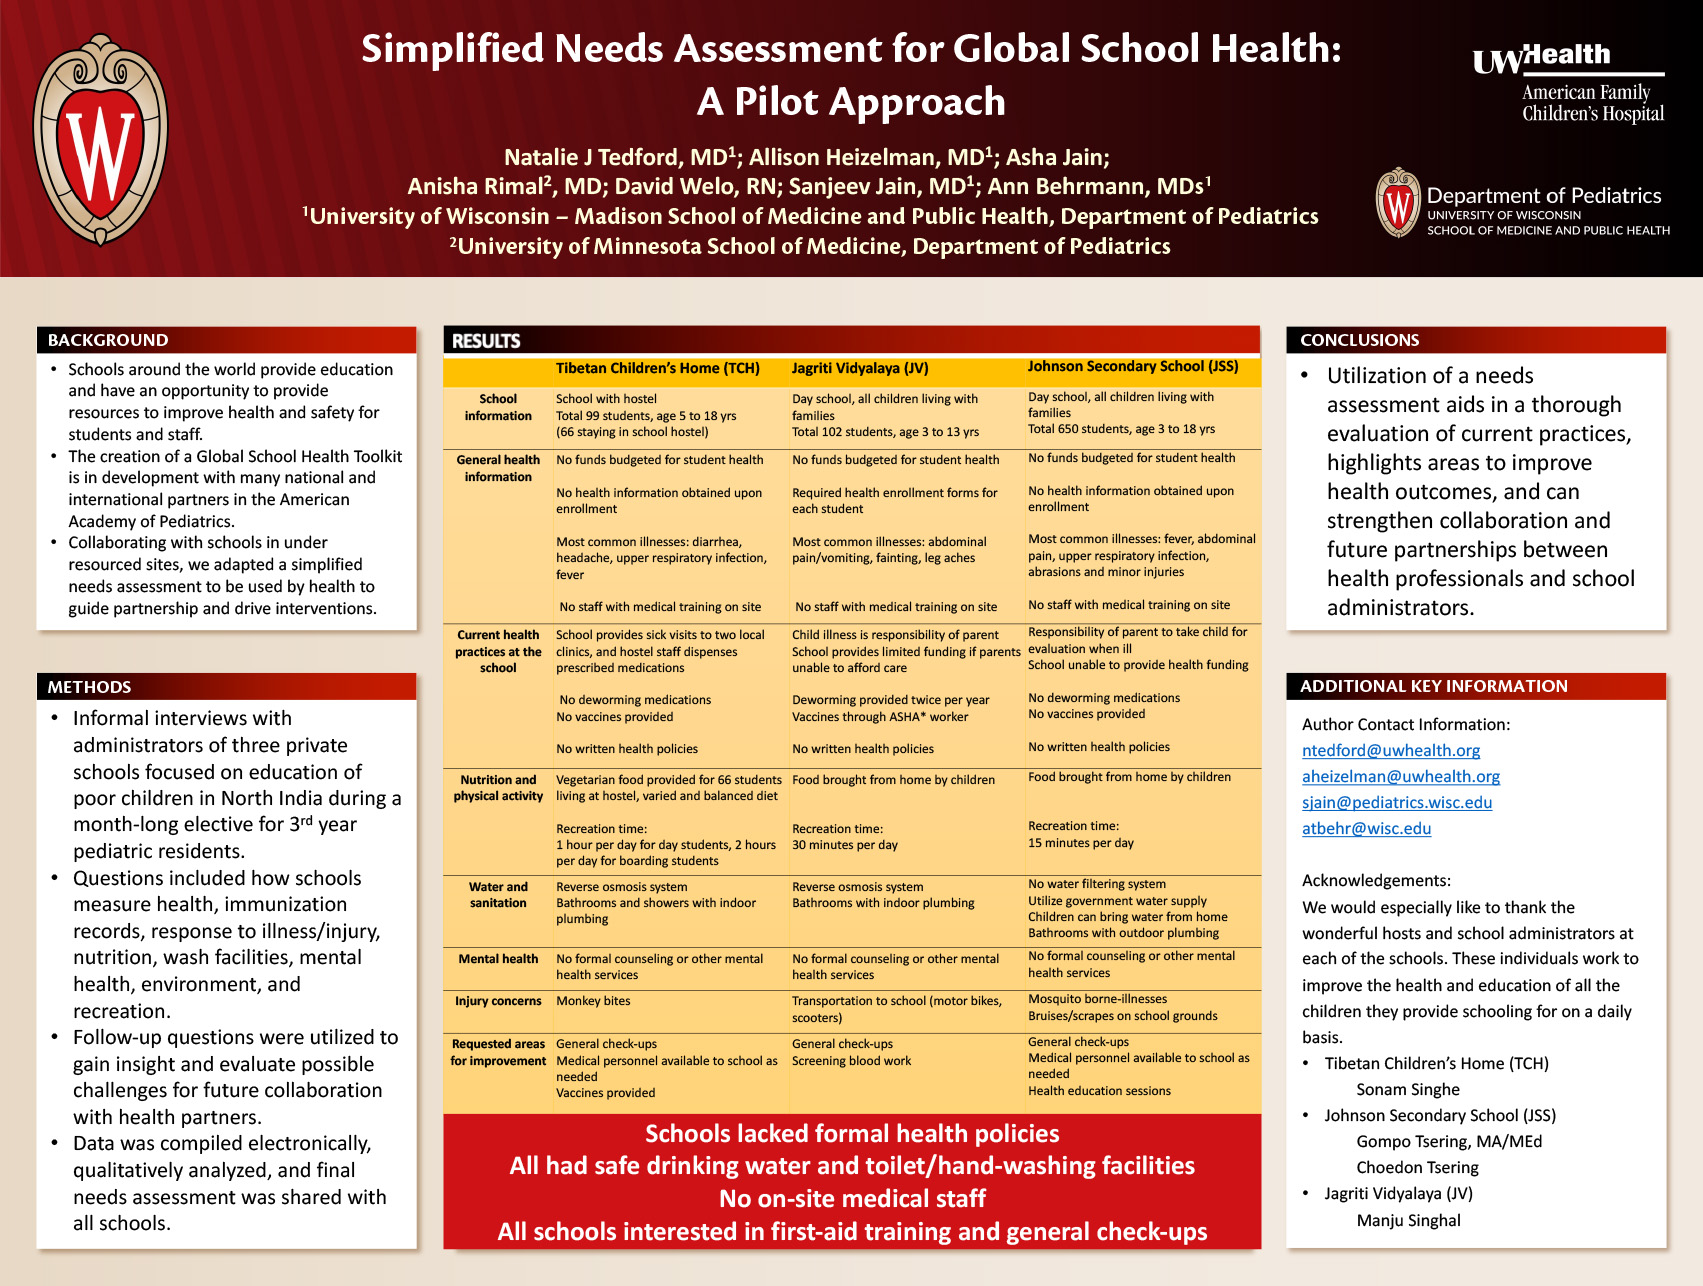 Simplified Needs Assessment for Global School Health: A Pilot Approach poster image